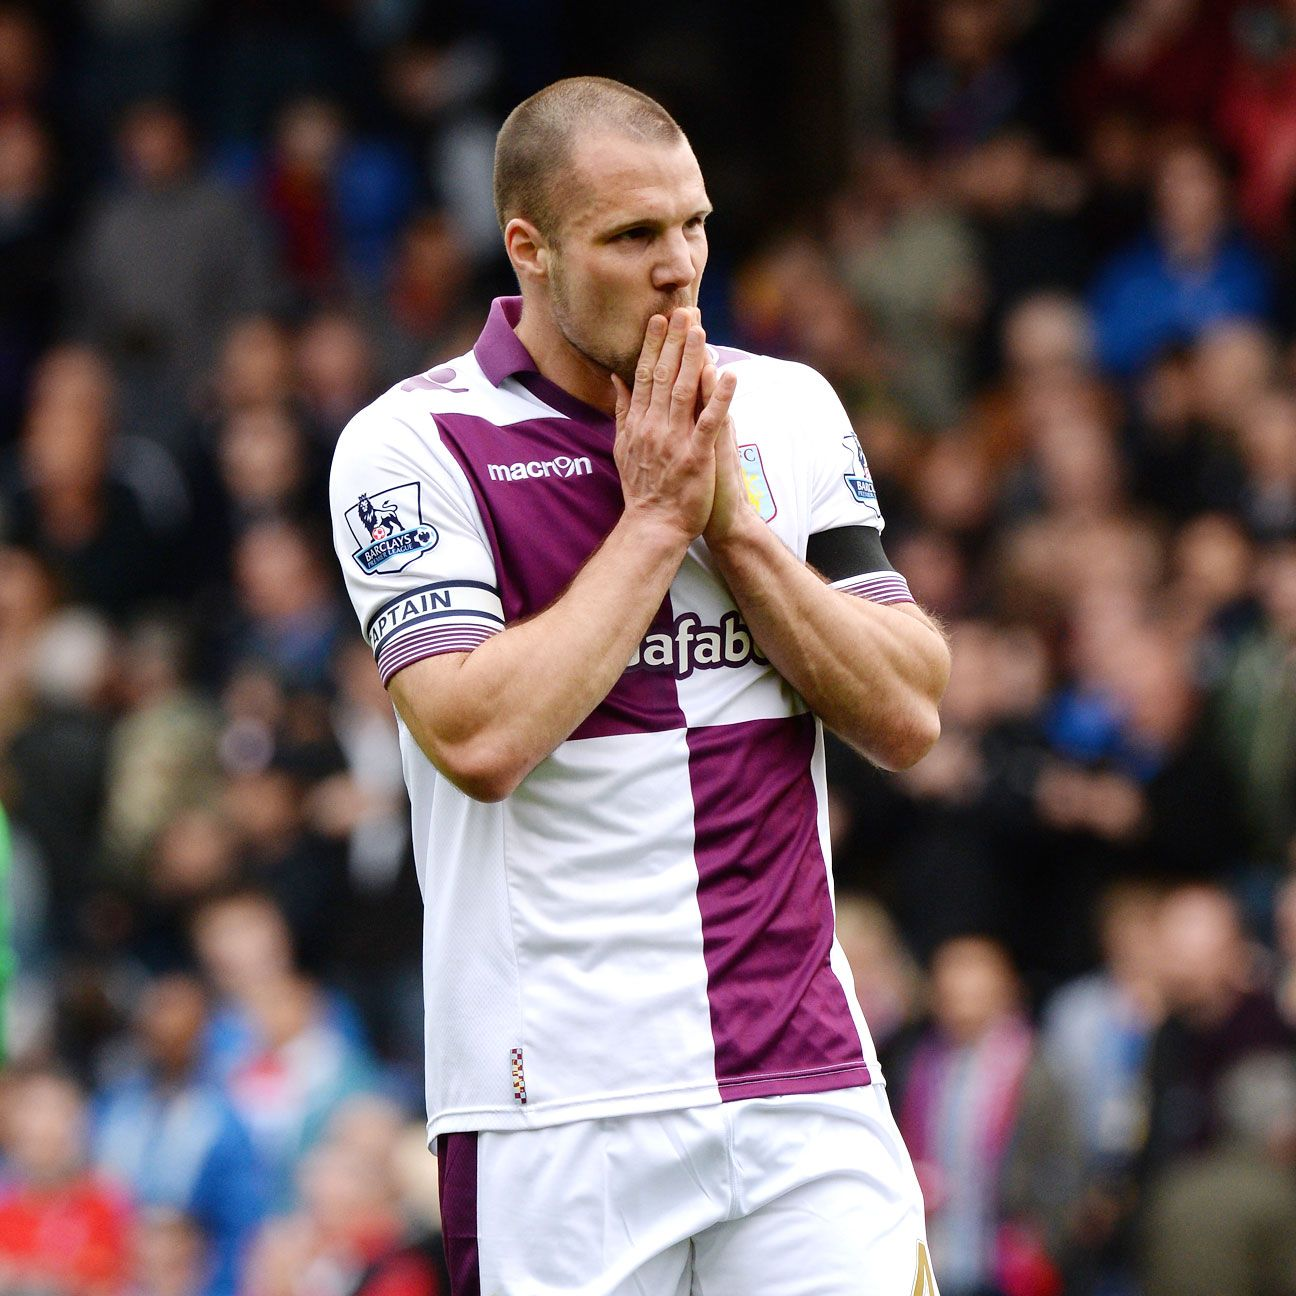 Aston Villa defender Ron Vlaar has become a coveted transfer target after his stellar World Cup performance with the Netherlands.